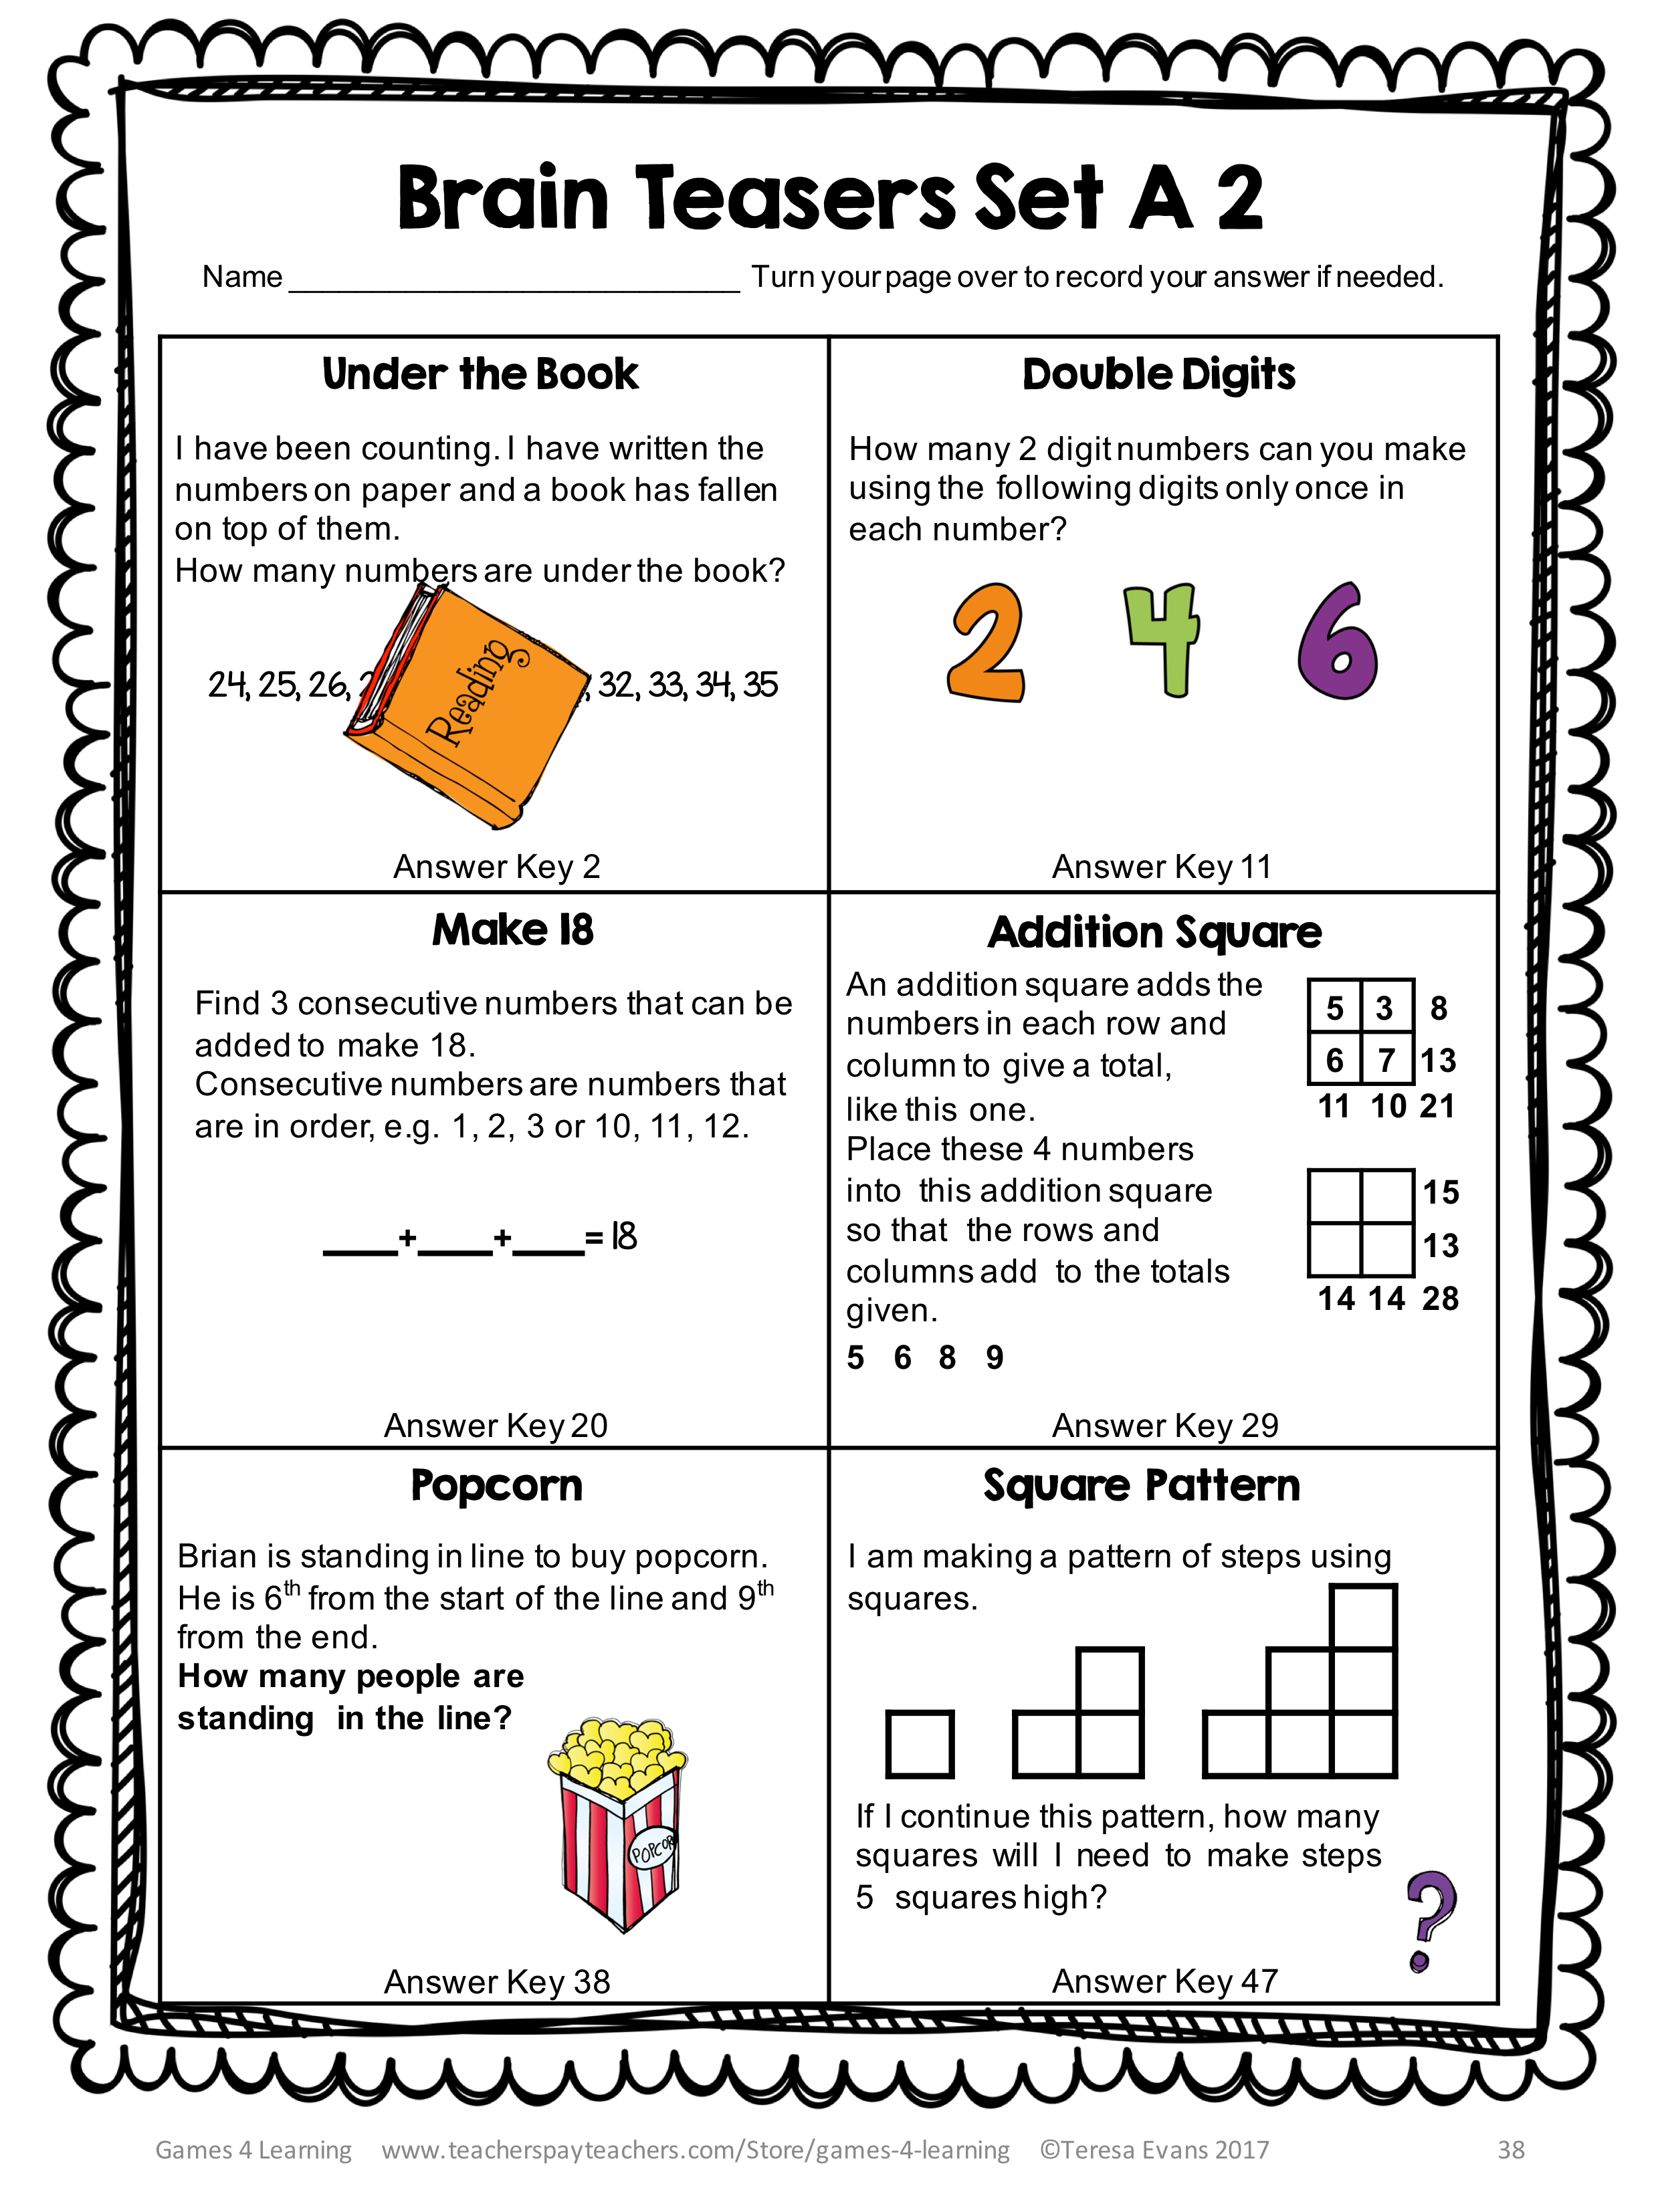 Printable Math Problems And Math Brain Teasers Cards From